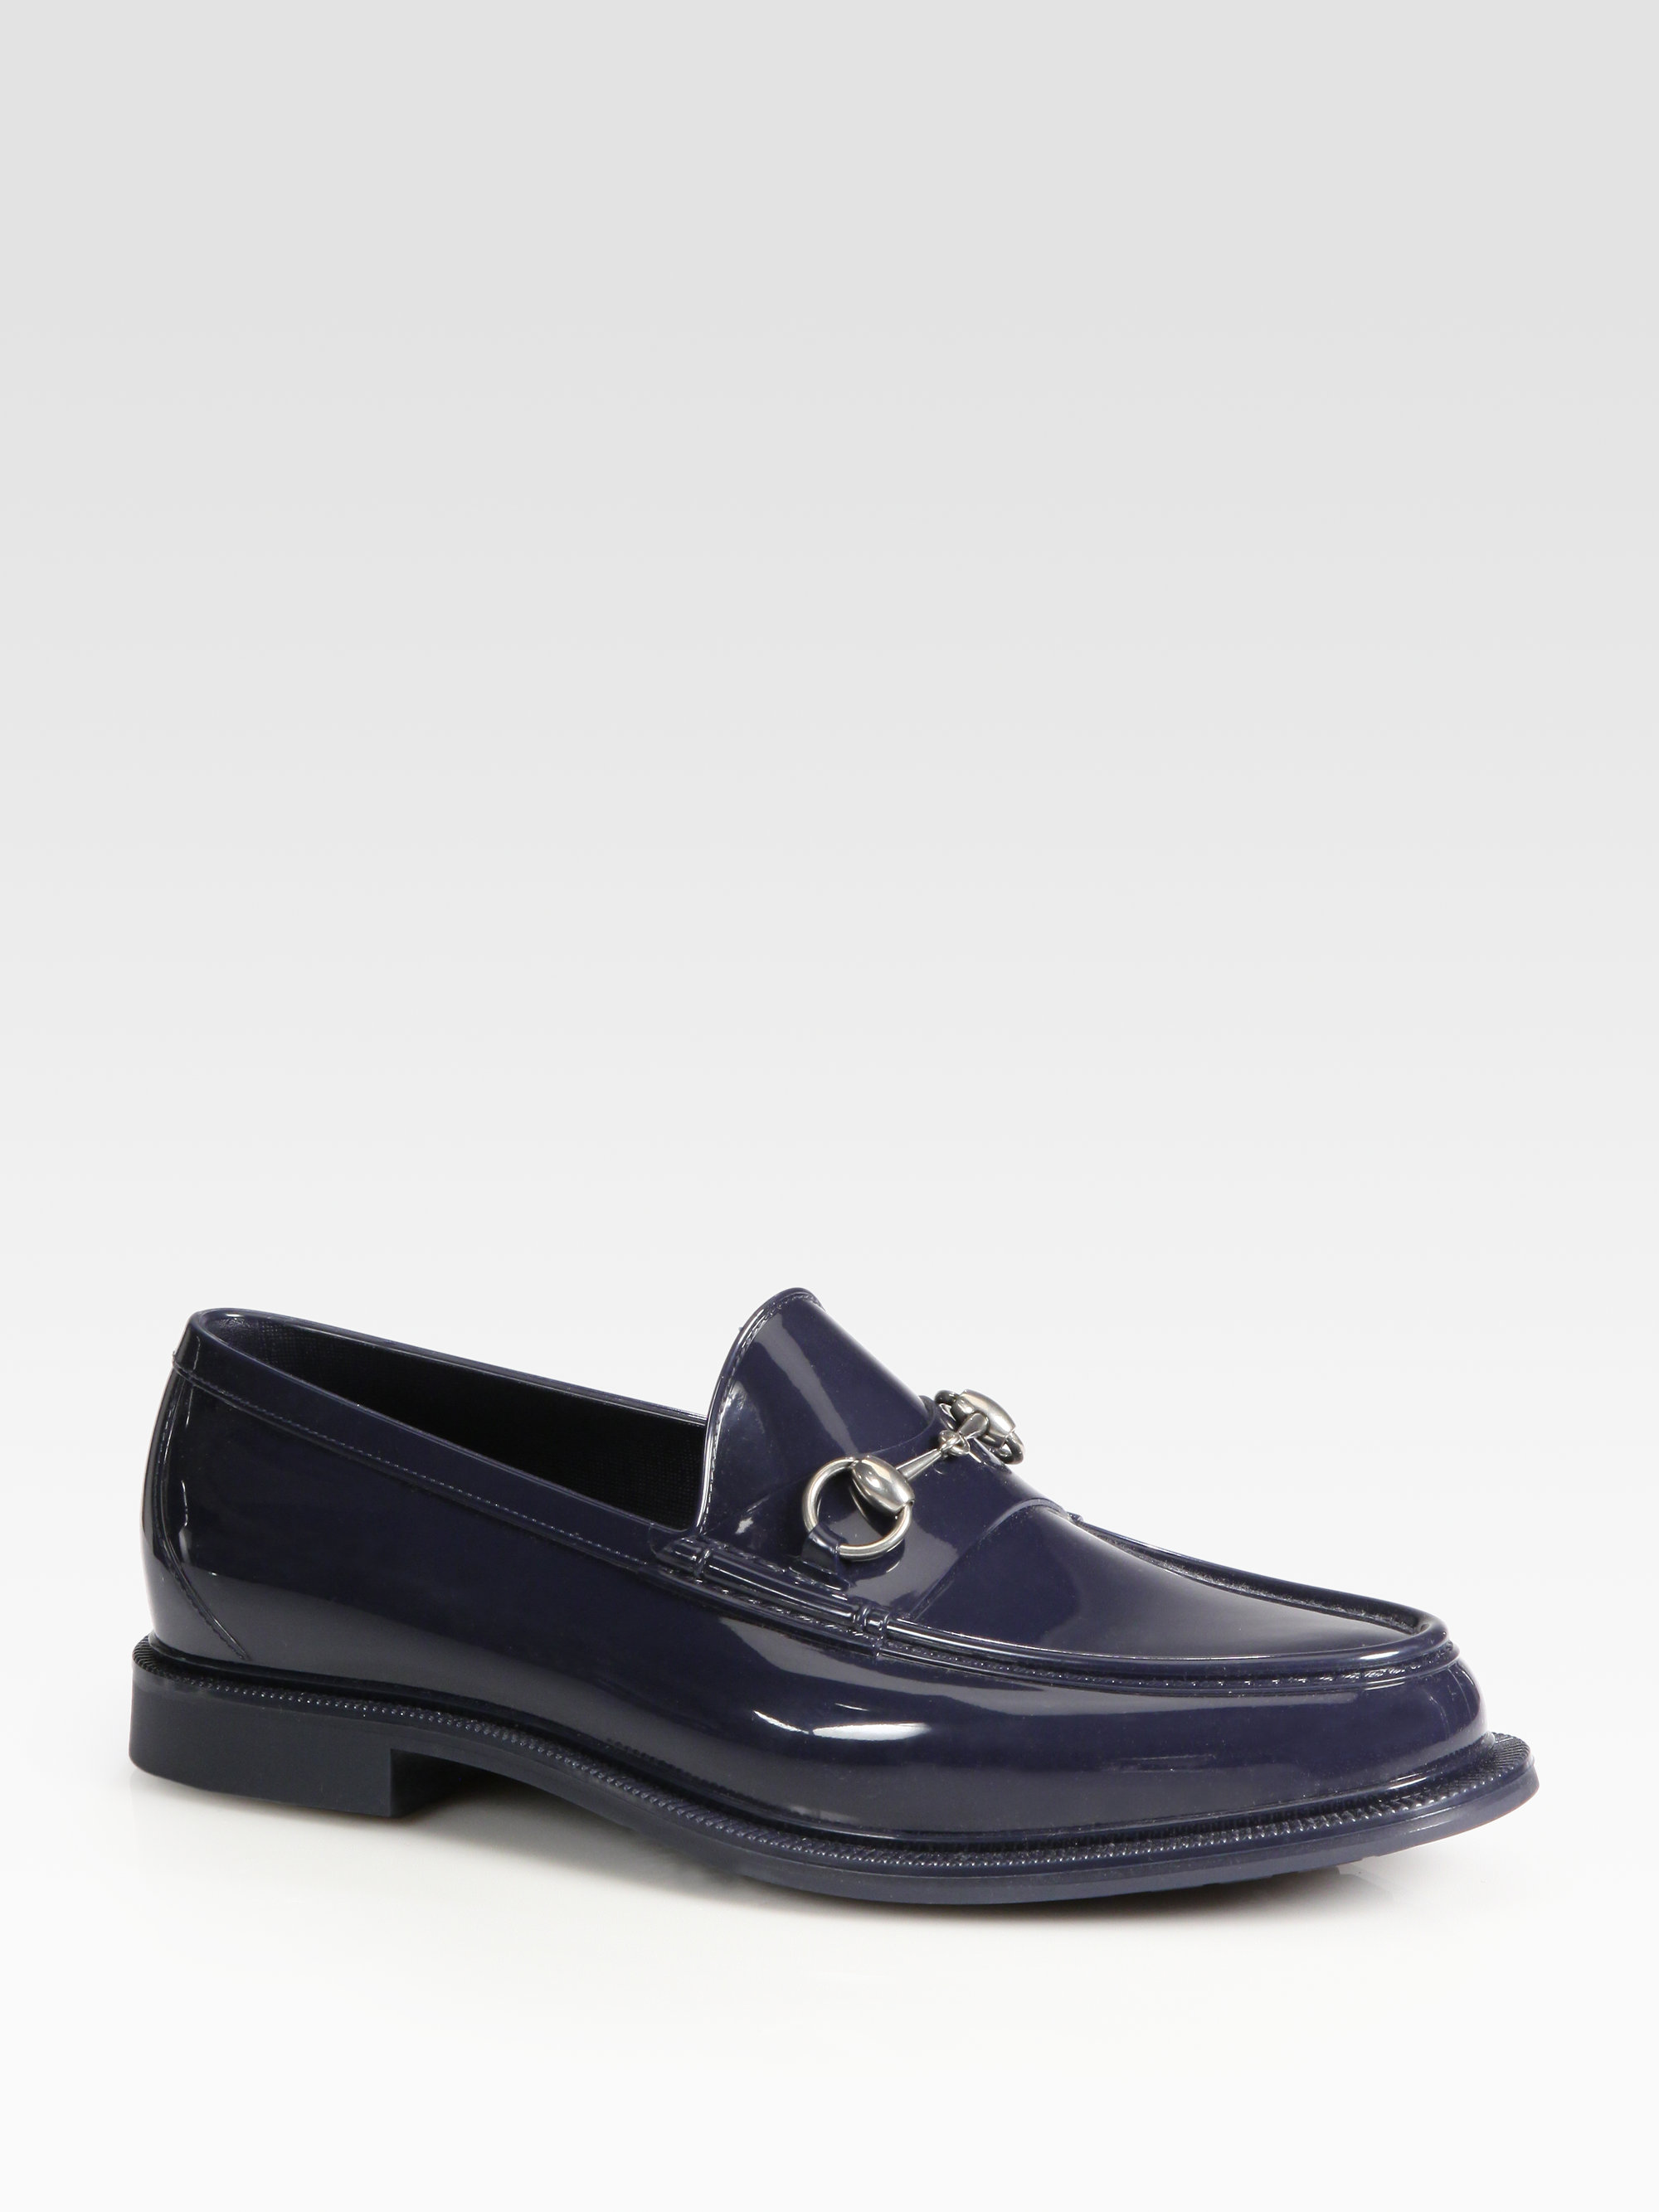 John Lobb Shoes >> Gucci Rubber Rain Shoe in Black for Men (blue) | Lyst